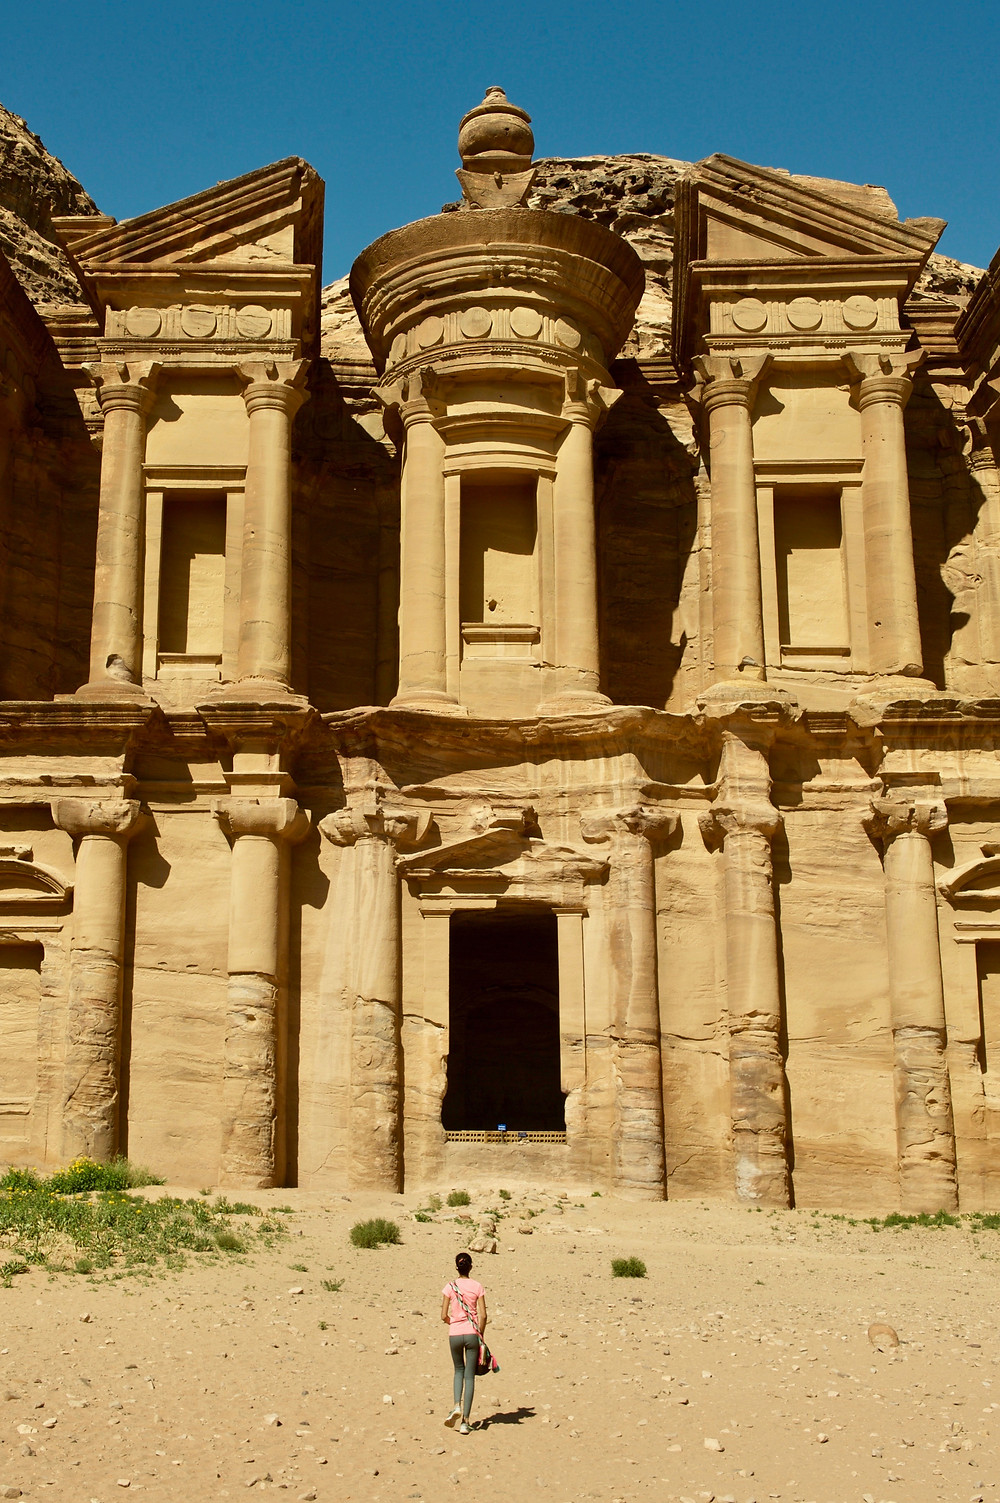 Eryn is dwarfed by the Monastery as she walks toward the structure that is carved into a cliff face in Petra